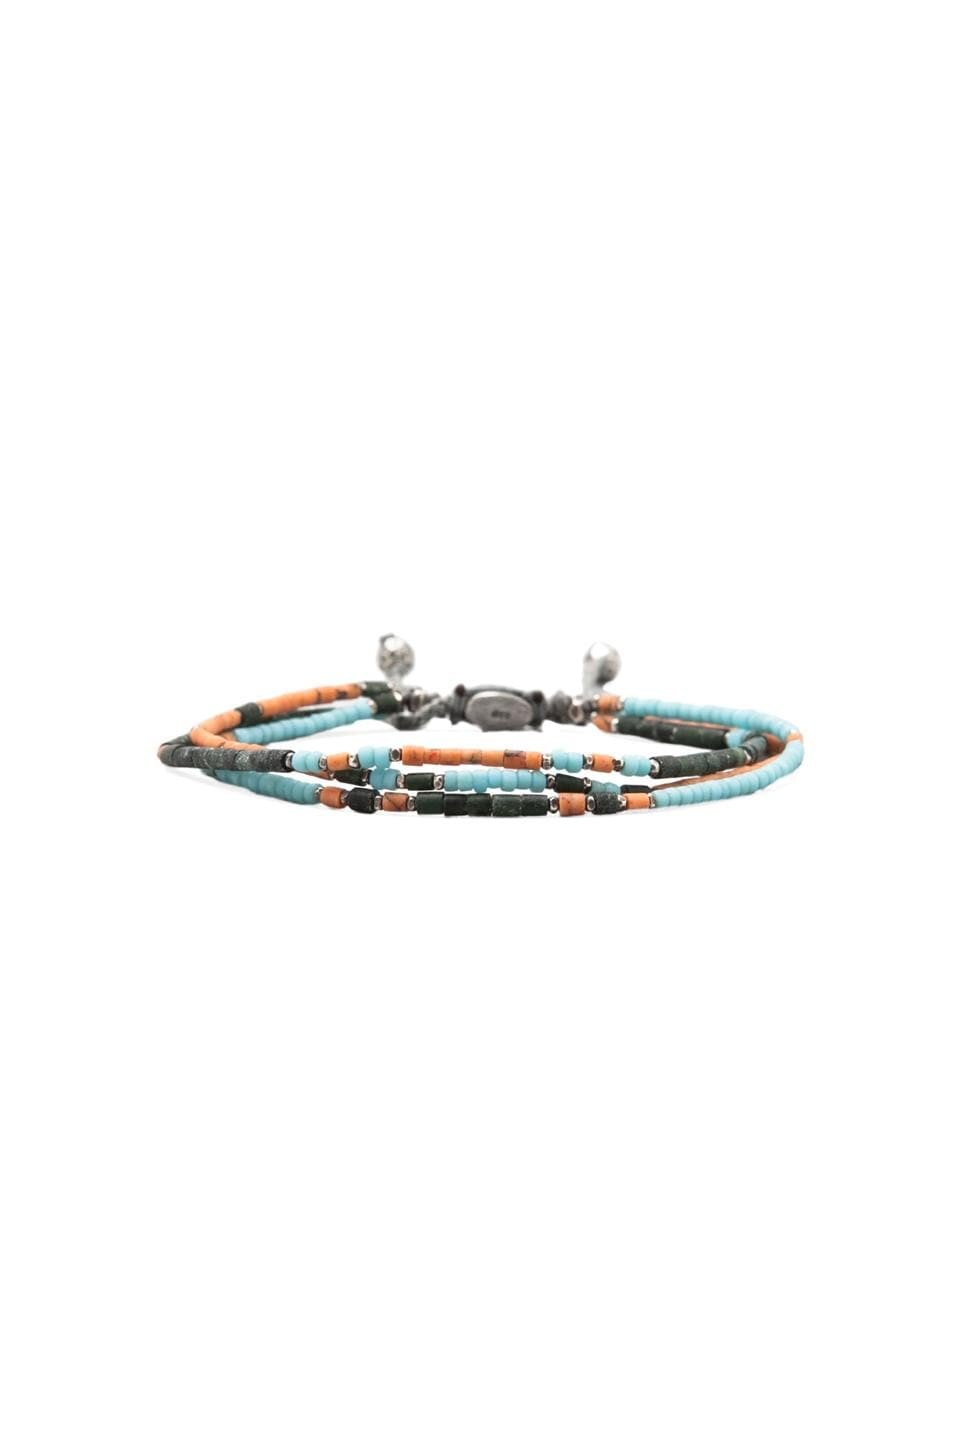 M.Cohen 3-Layer Bracelet/Coral/Turquoise in Jade